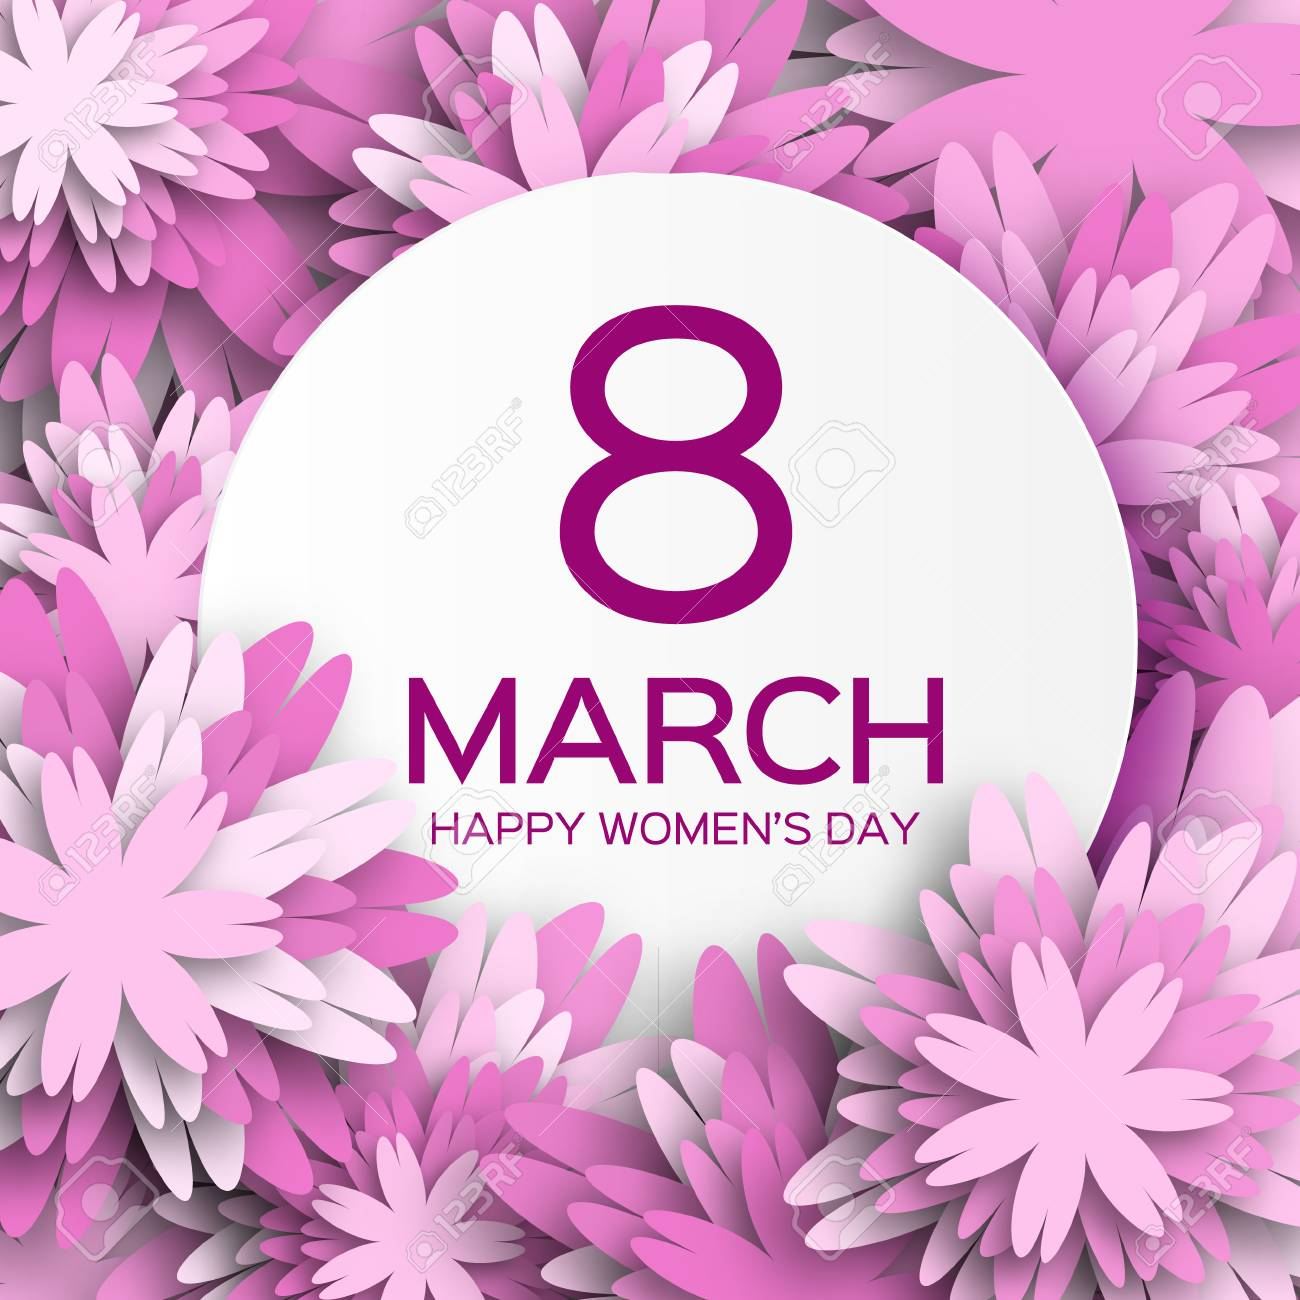 Abstract Purple Floral Greeting card - International Happy Women's Day - 8 March holiday background with paper cut Frame Flowers. - 52891181